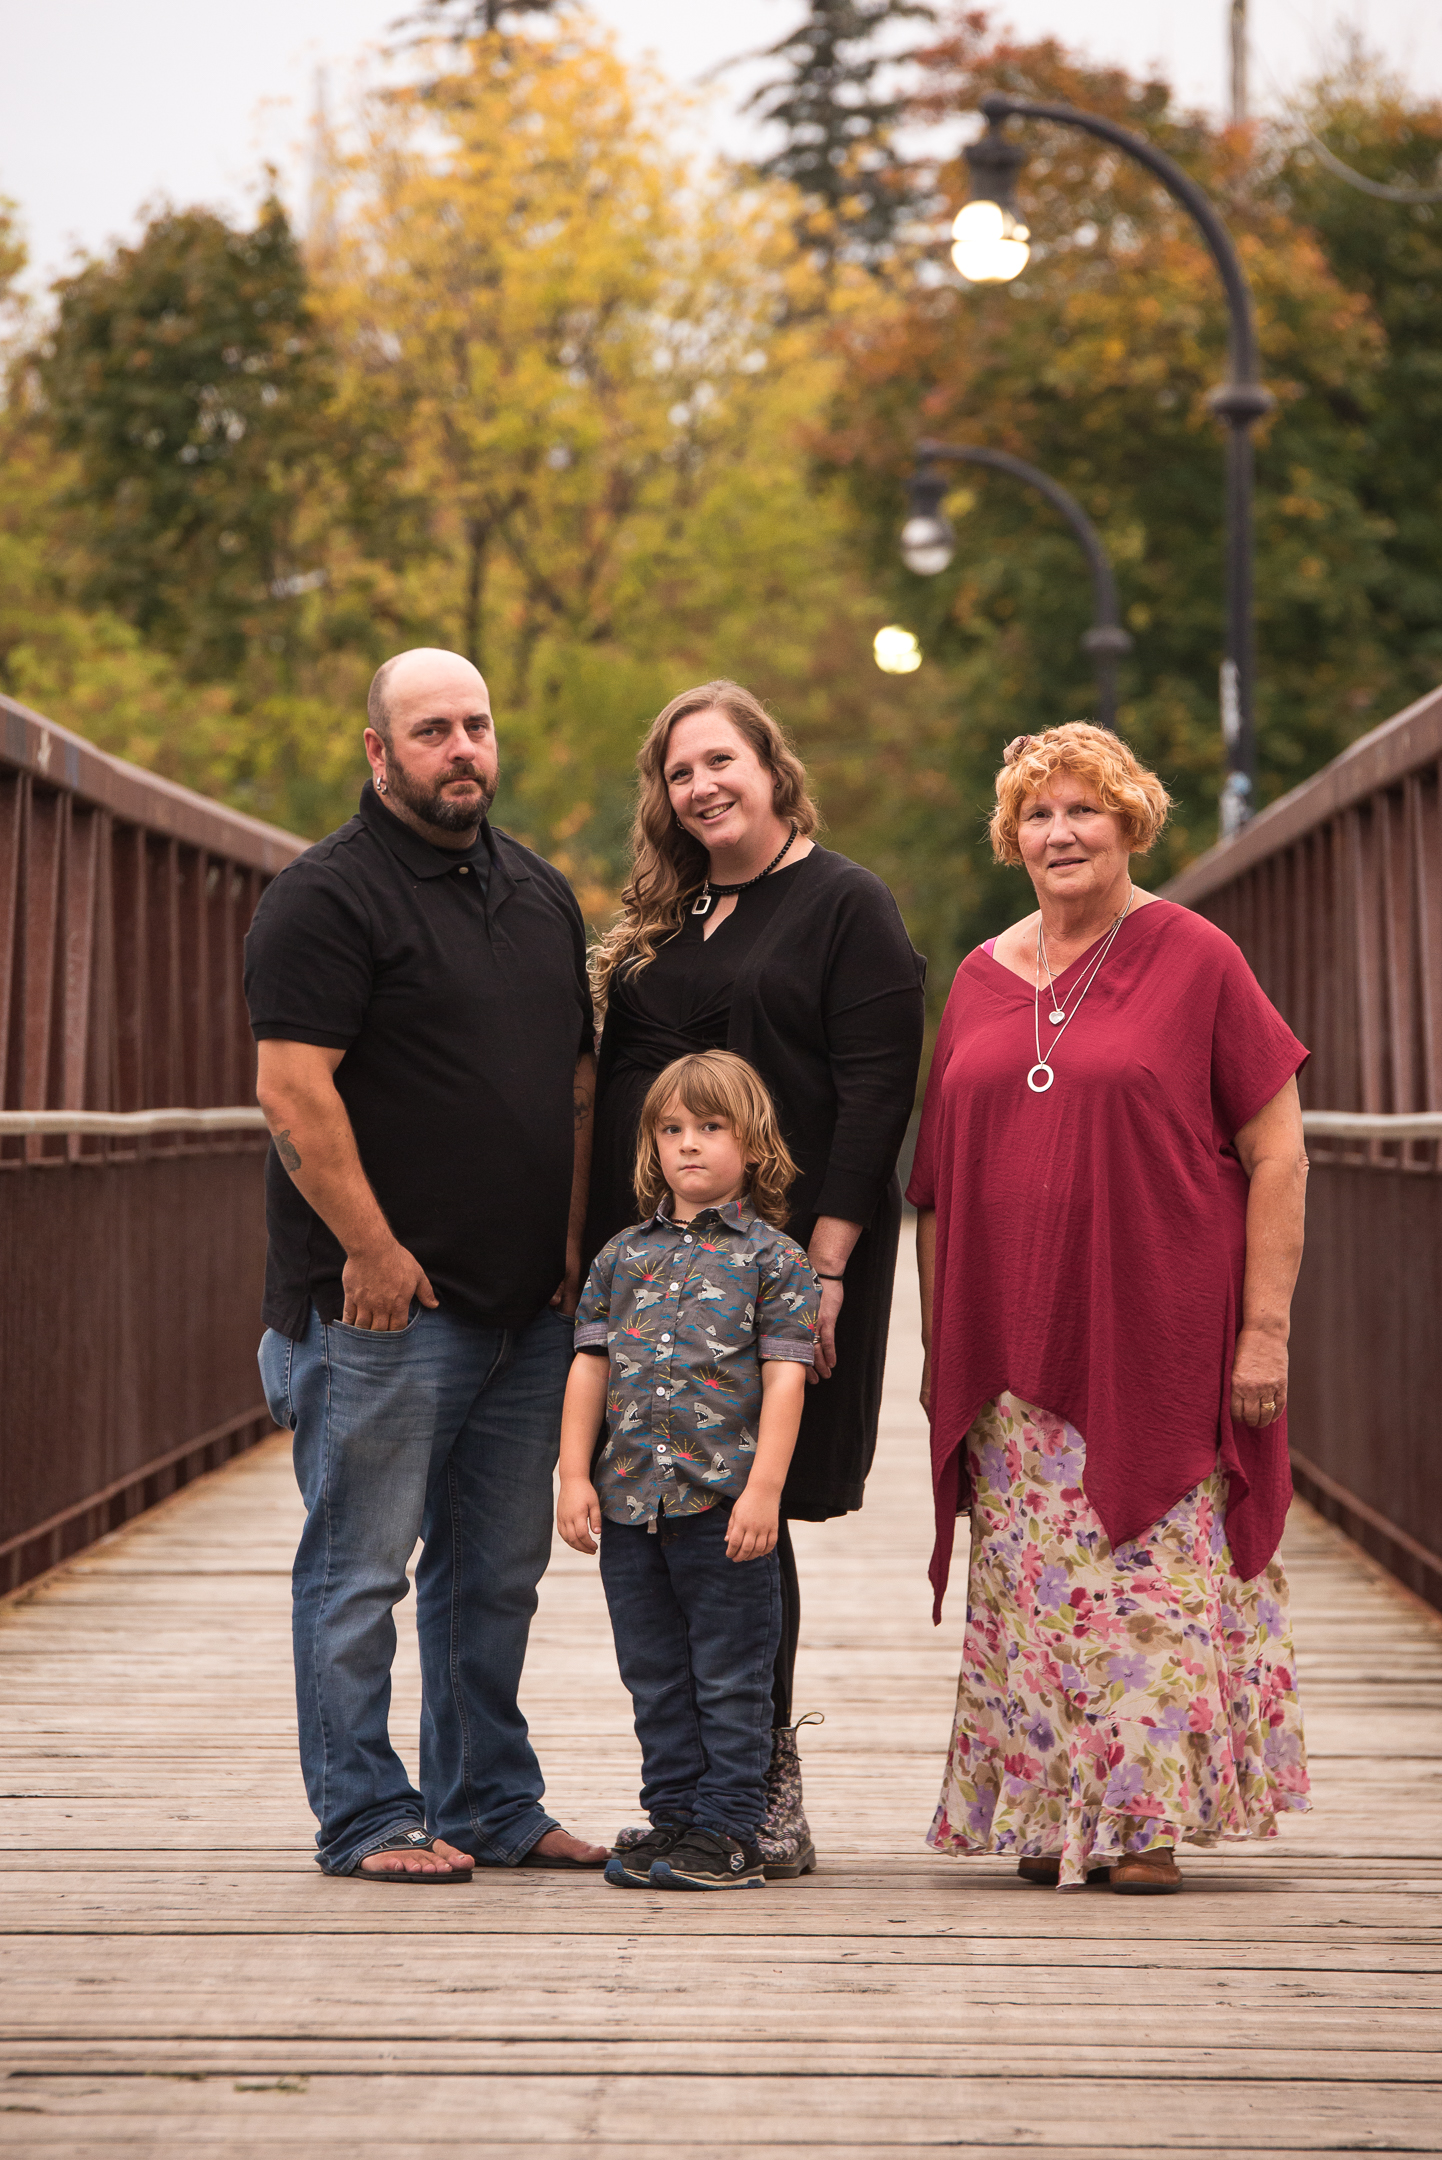 Naomi Lucienne Photography - Family - 171014590.jpg